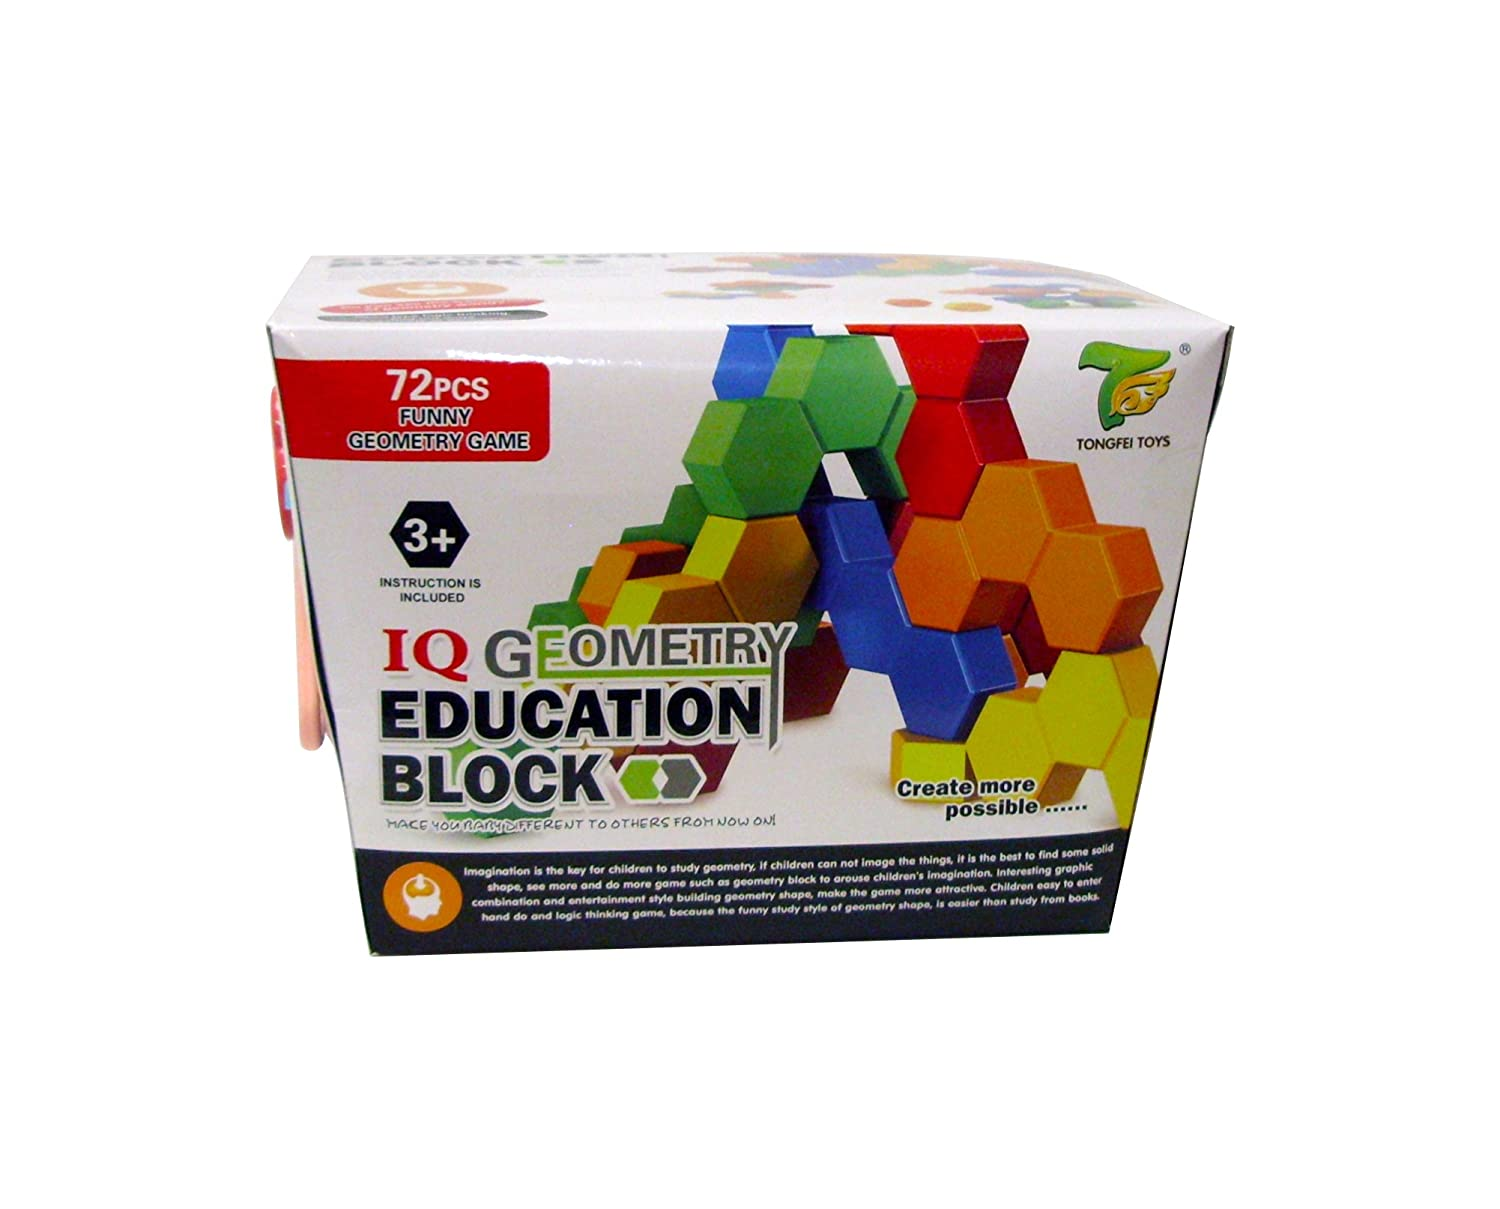 Kids Building Geometry Hexagonal Blocks in Adorable Blue Storage Container~Educational Toy Gift~72 pieces~5 Shapes~5 Colors Tongfei Toys